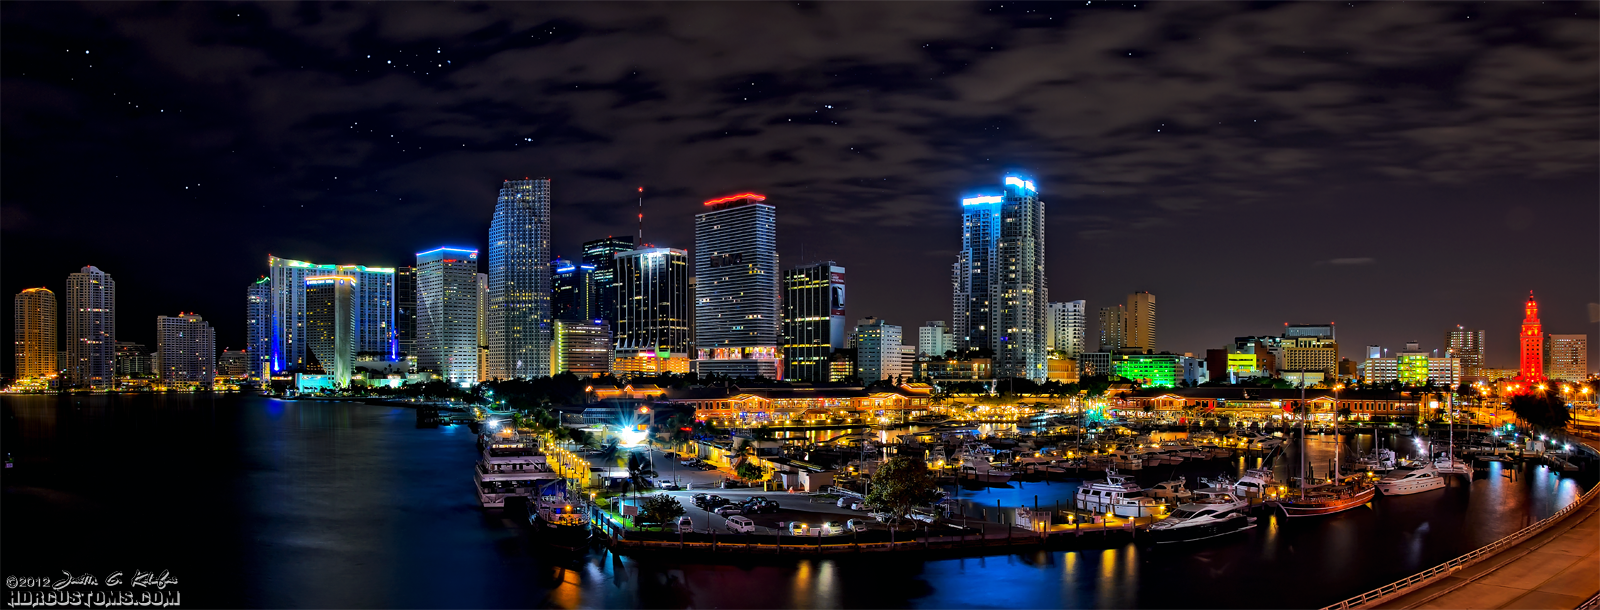 Bayside by Night, Downtown Miami from the Port blvd bridge panoramic HDR